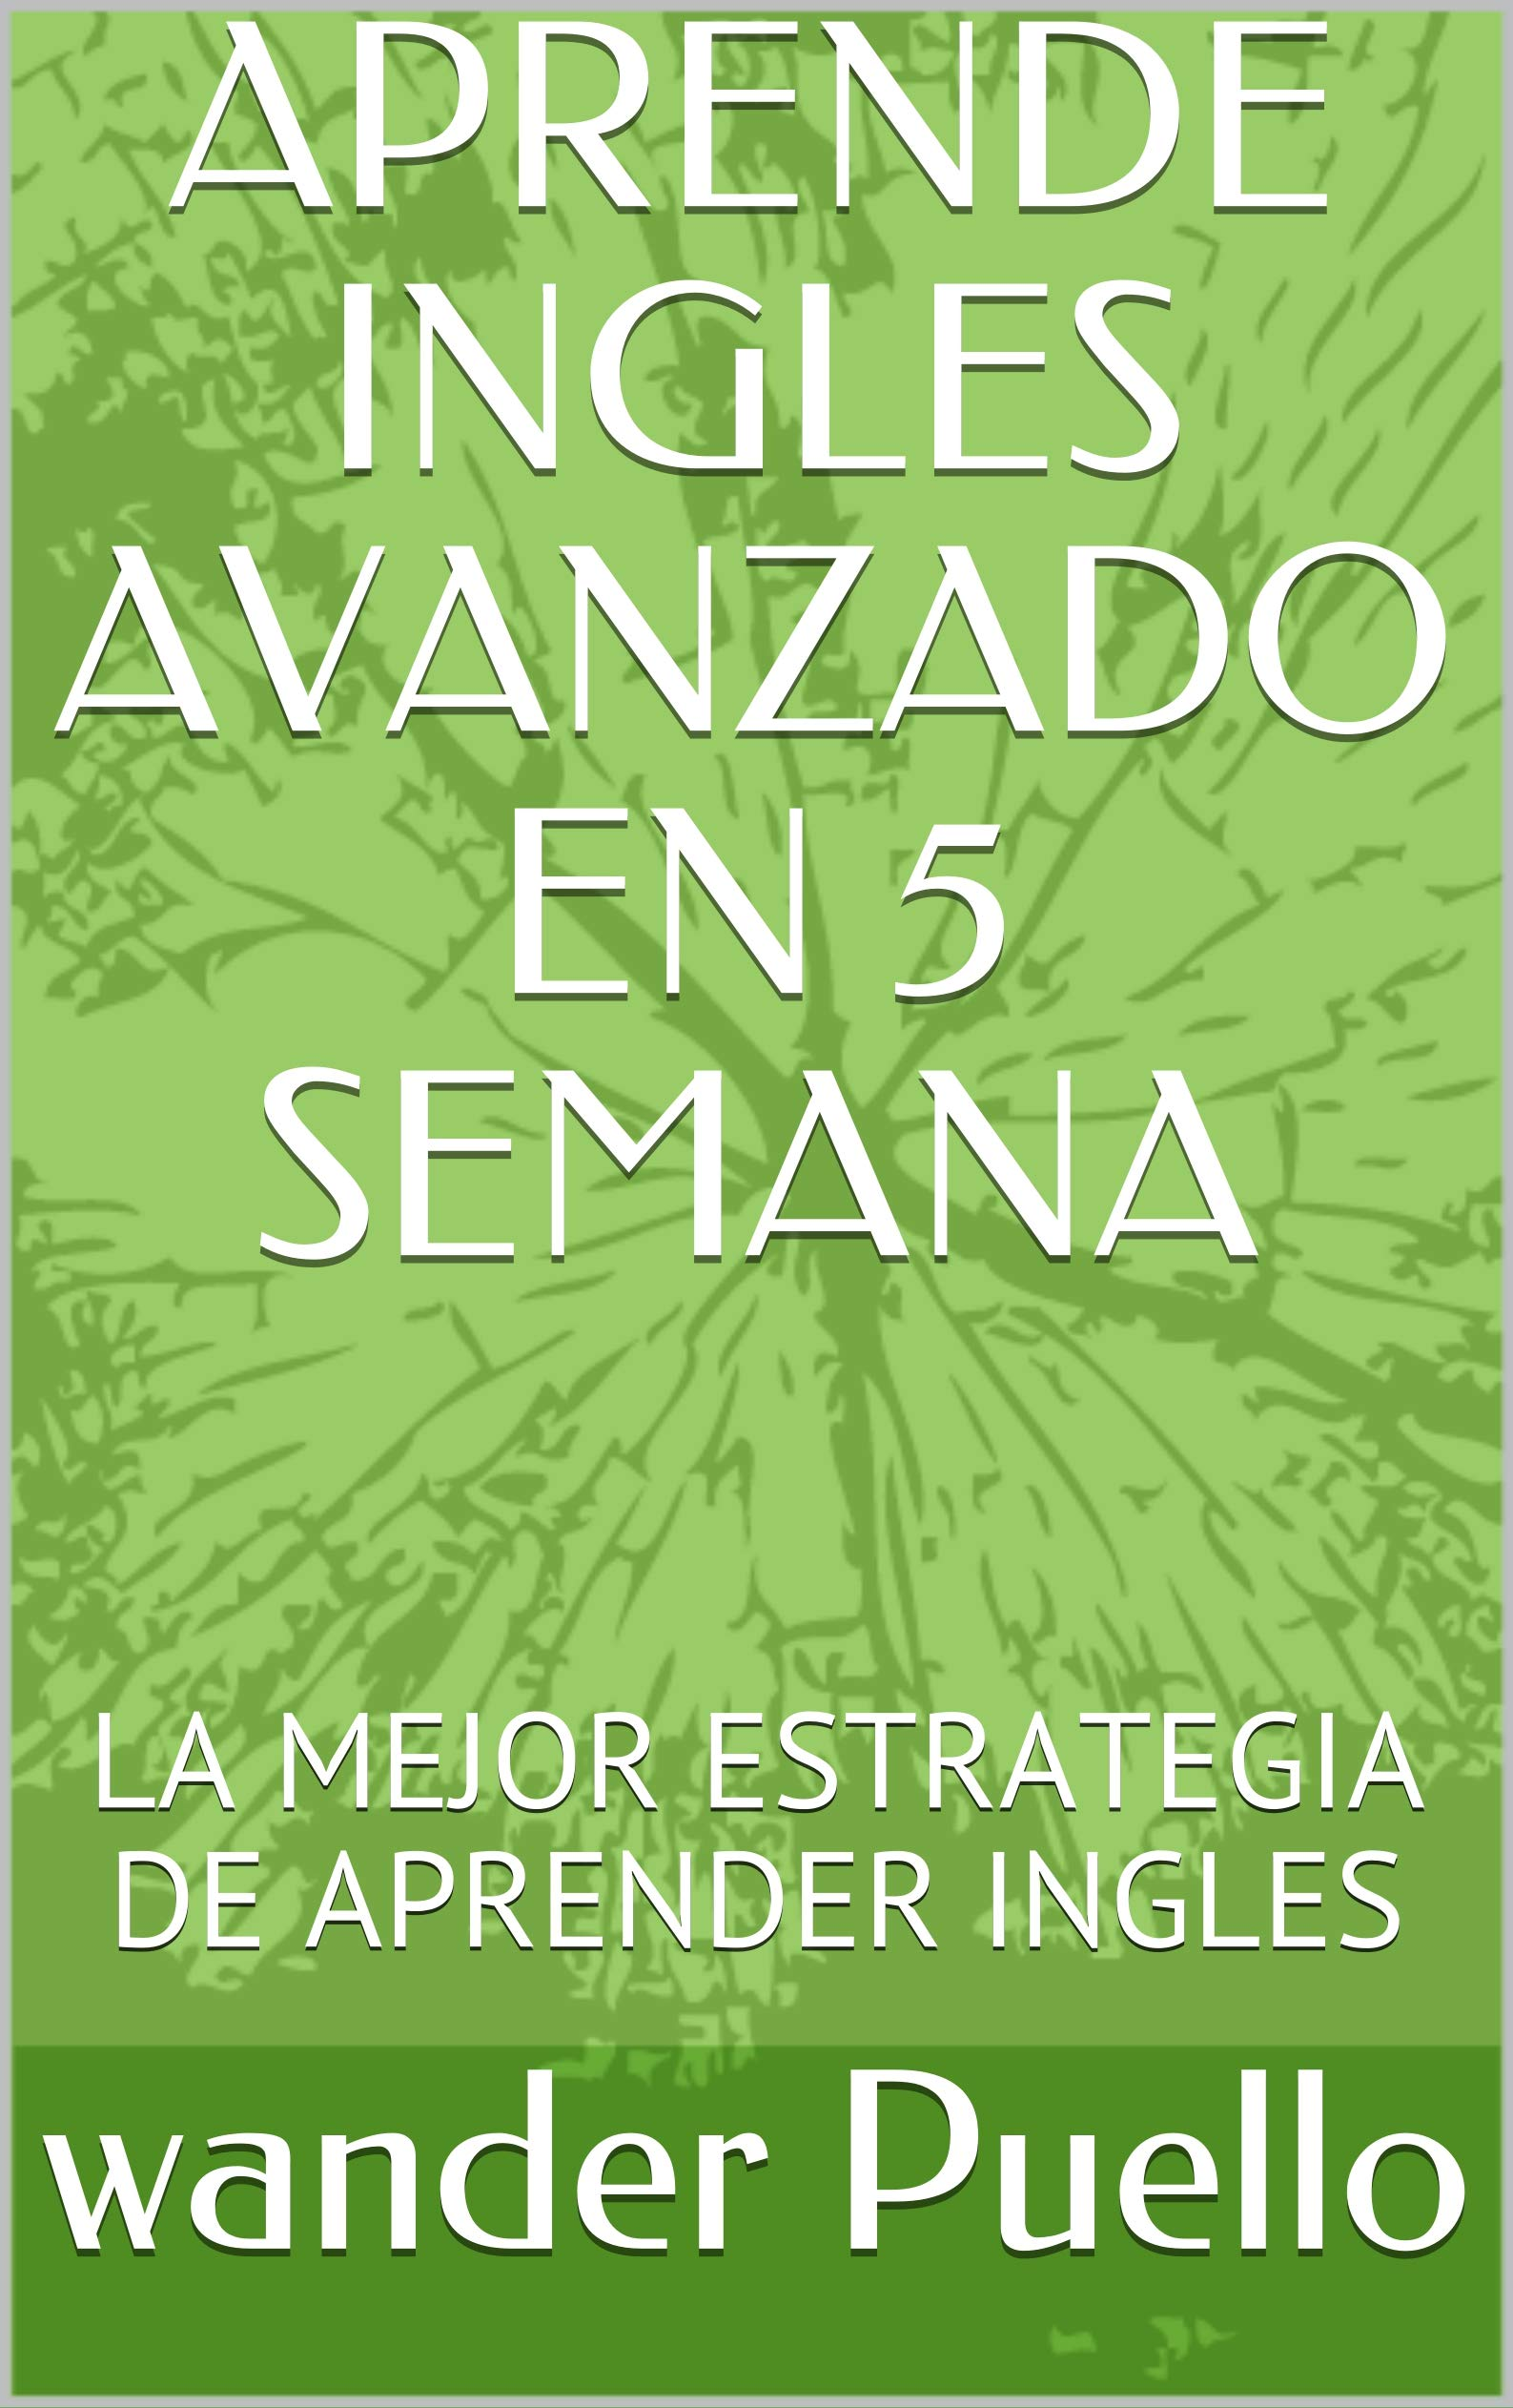 APRENDE INGLES AVANZADO EN 5 SEMANA : LA MEJOR ESTRATEGIA DE APRENDER INGLES (BASIC ENGLISH GRAMMAR STRUCTURES AND VOCABULARY nº 2)